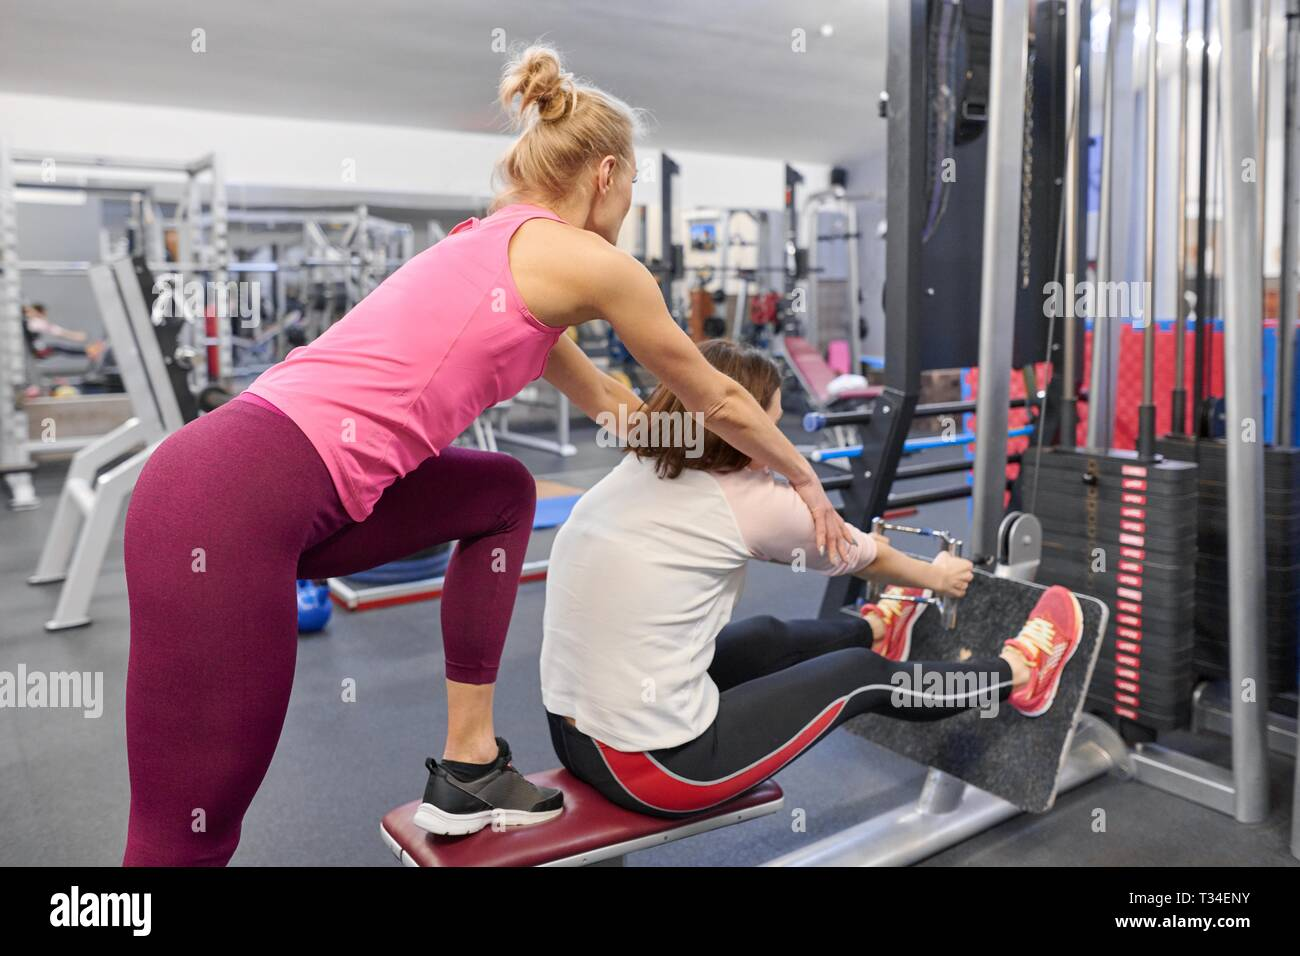 Personal fitness trainer working exercise with mature woman in the gym. Health fitness sport age concept. - Stock Image